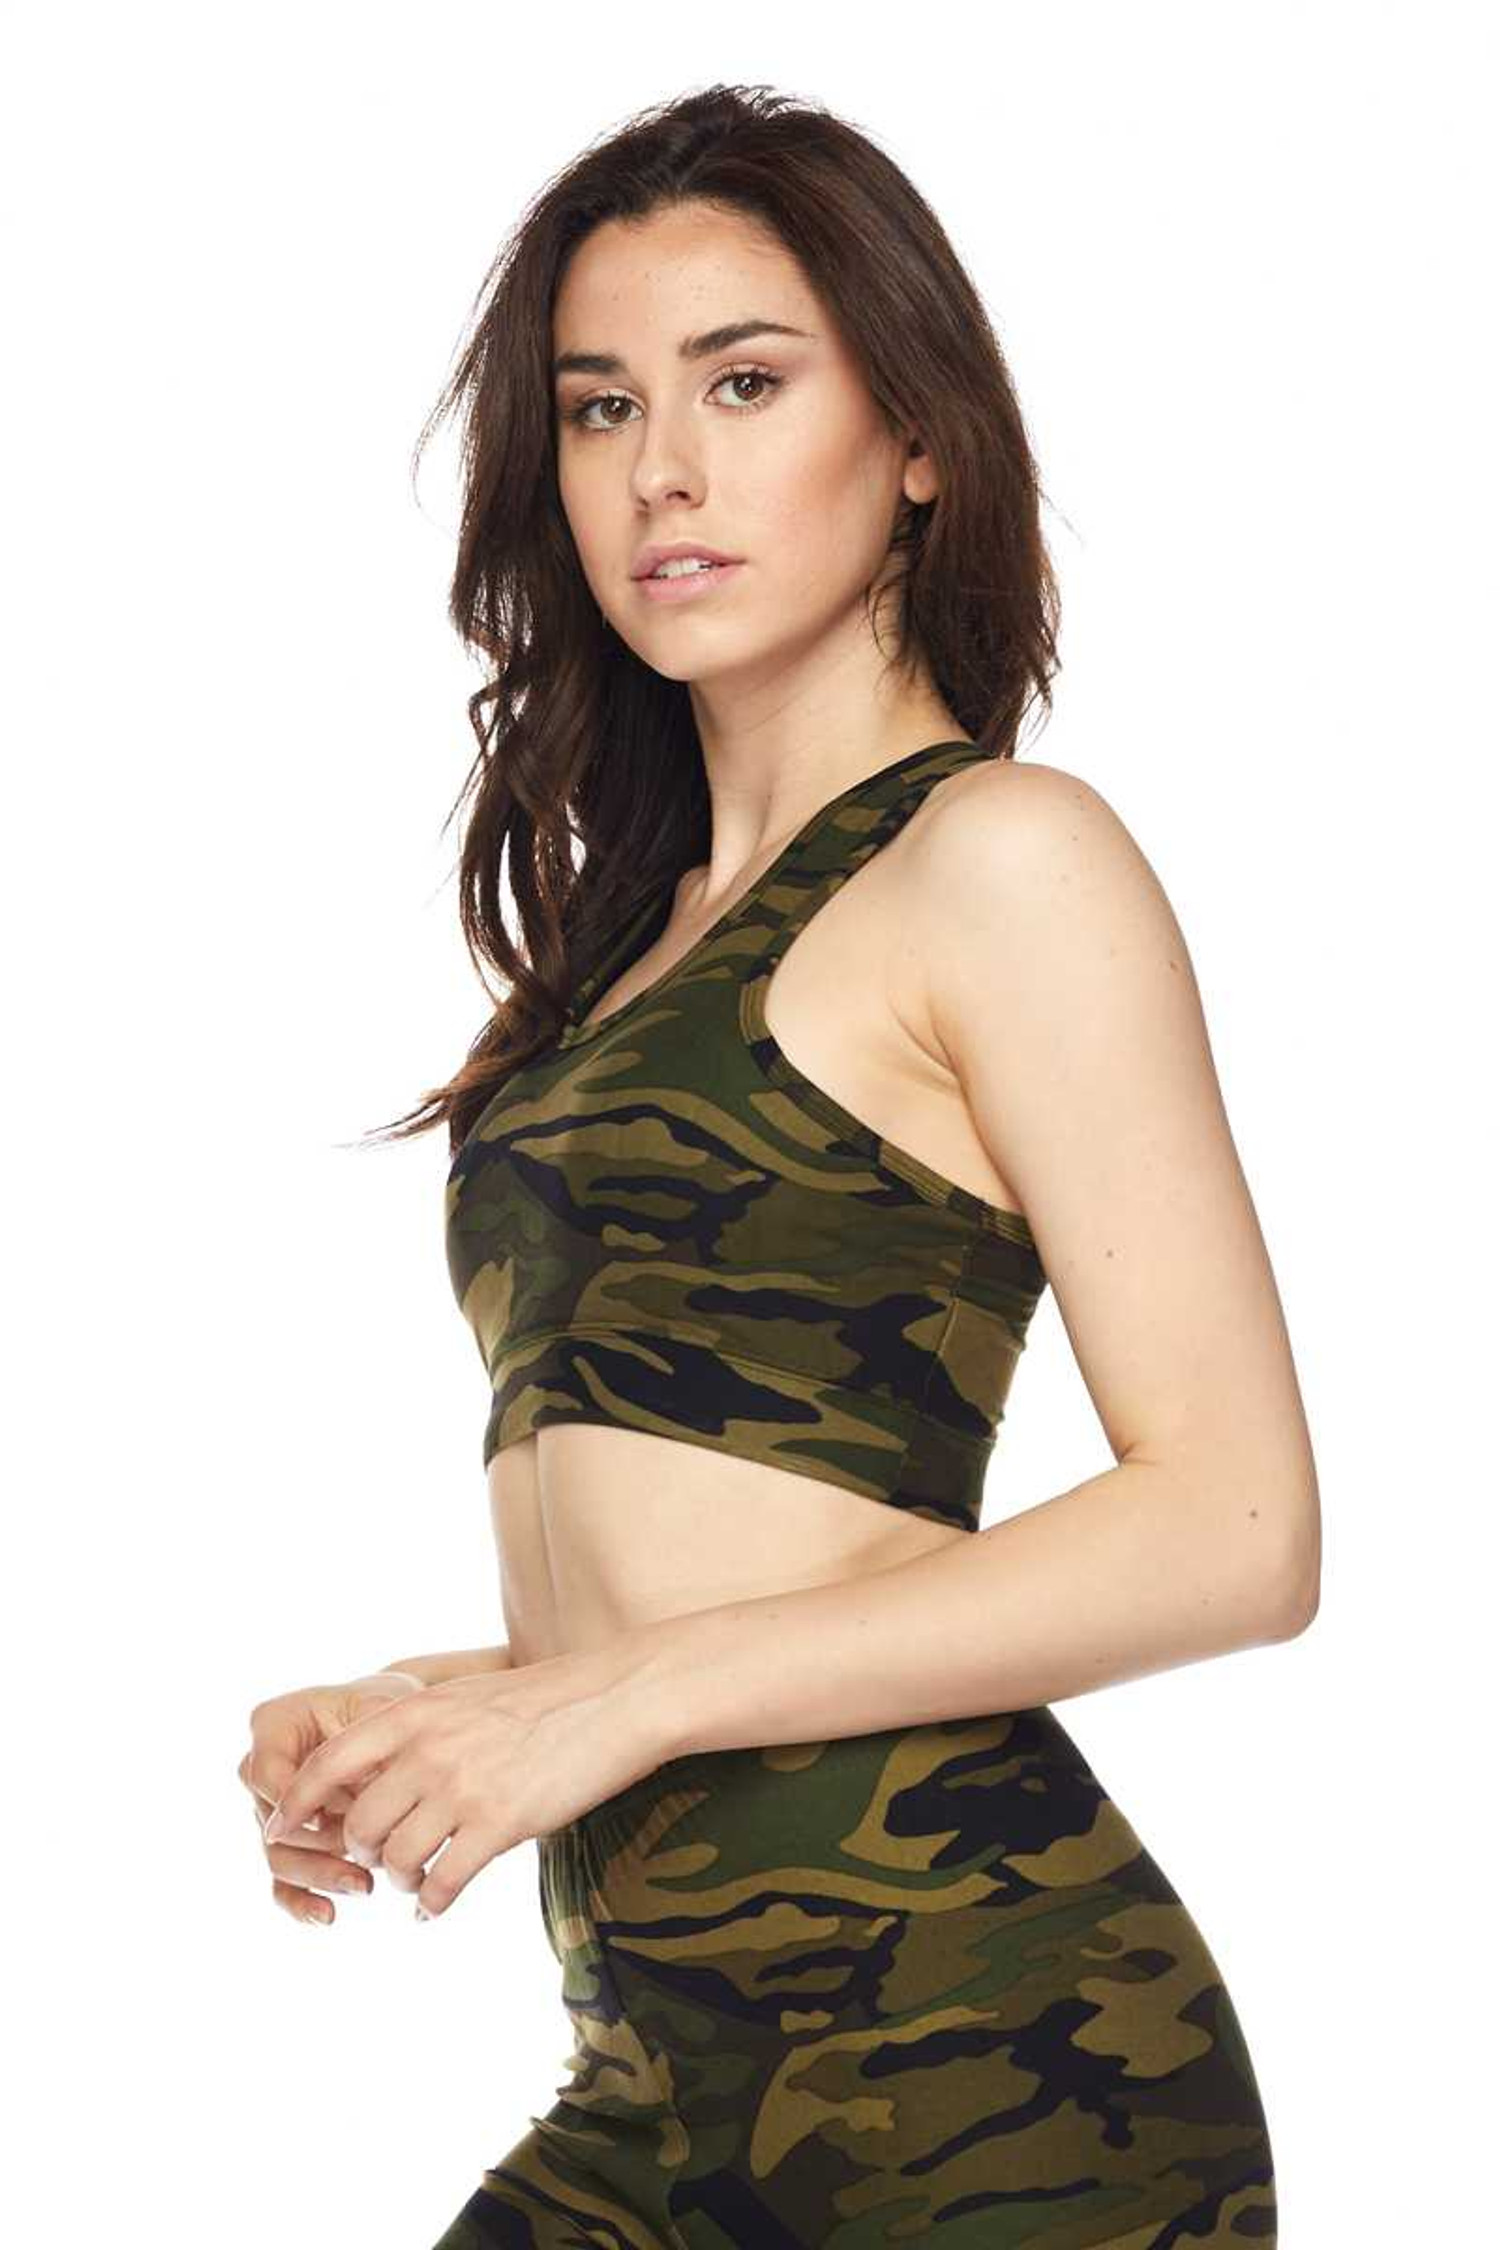 Brushed Green Camouflage Women's Bra Top Side